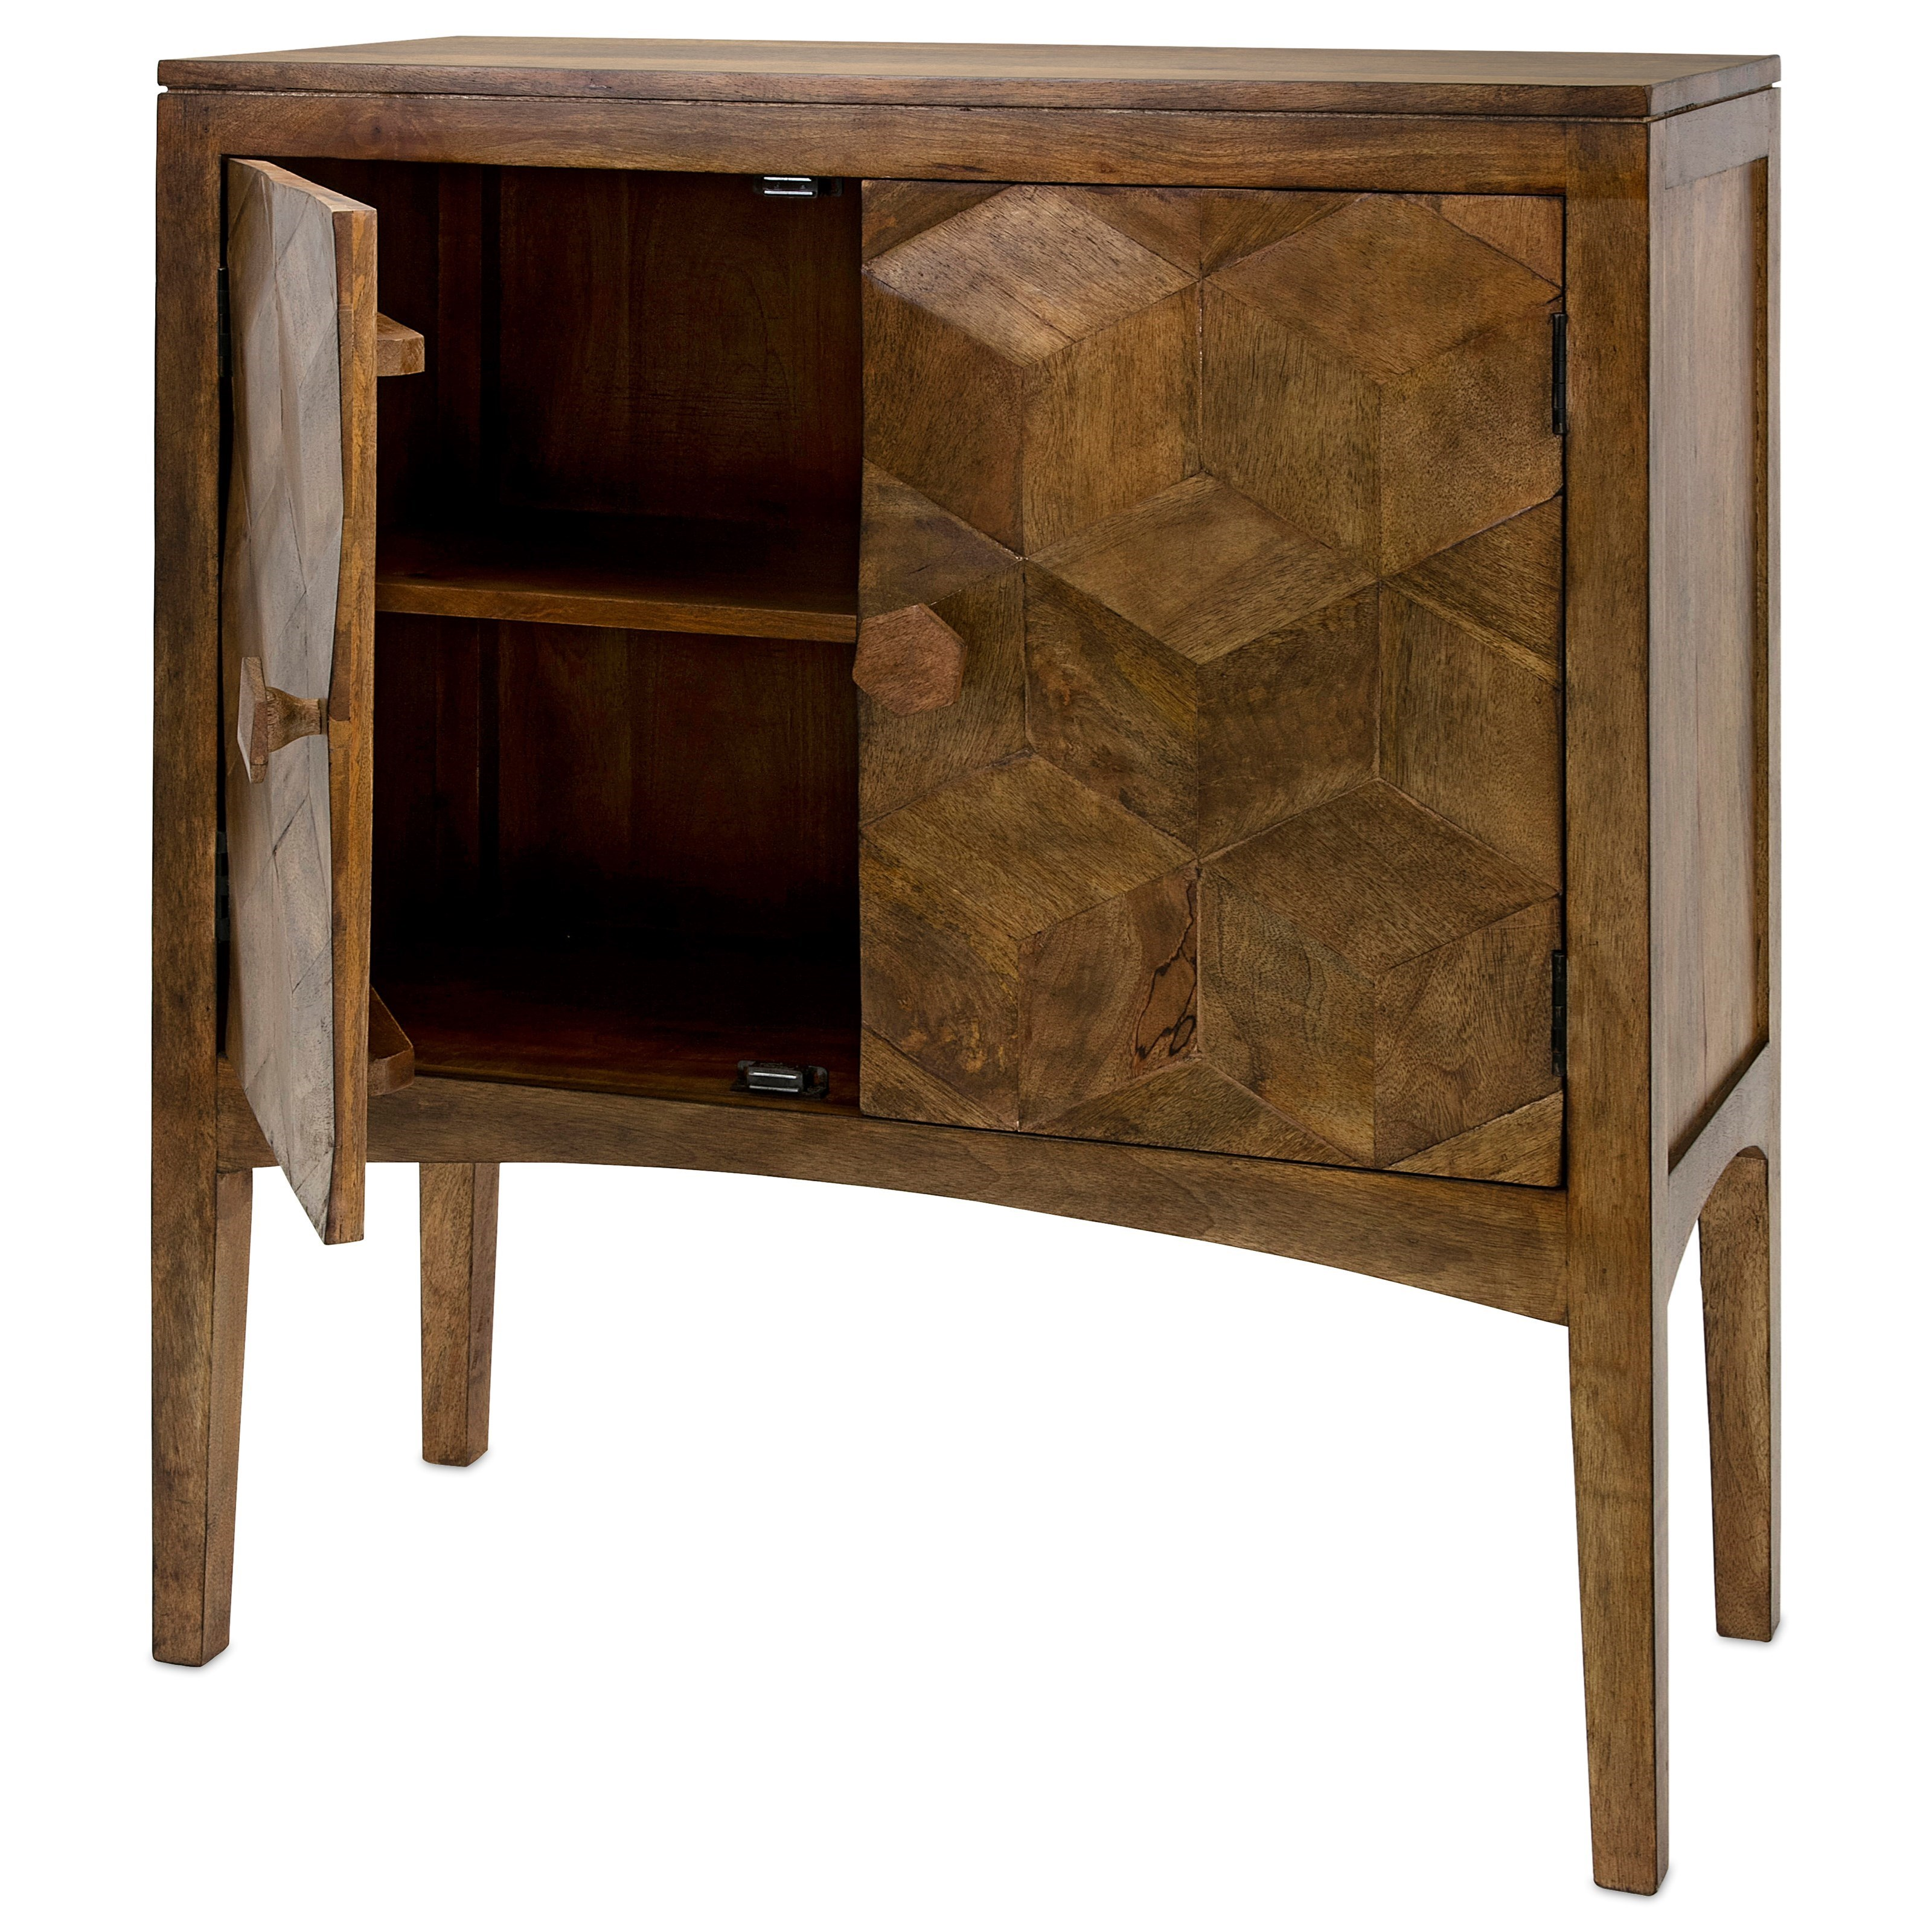 Accent Tables and Cabinets Hex 2-Door Cabinet by IMAX Worldwide Home at Alison Craig Home Furnishings